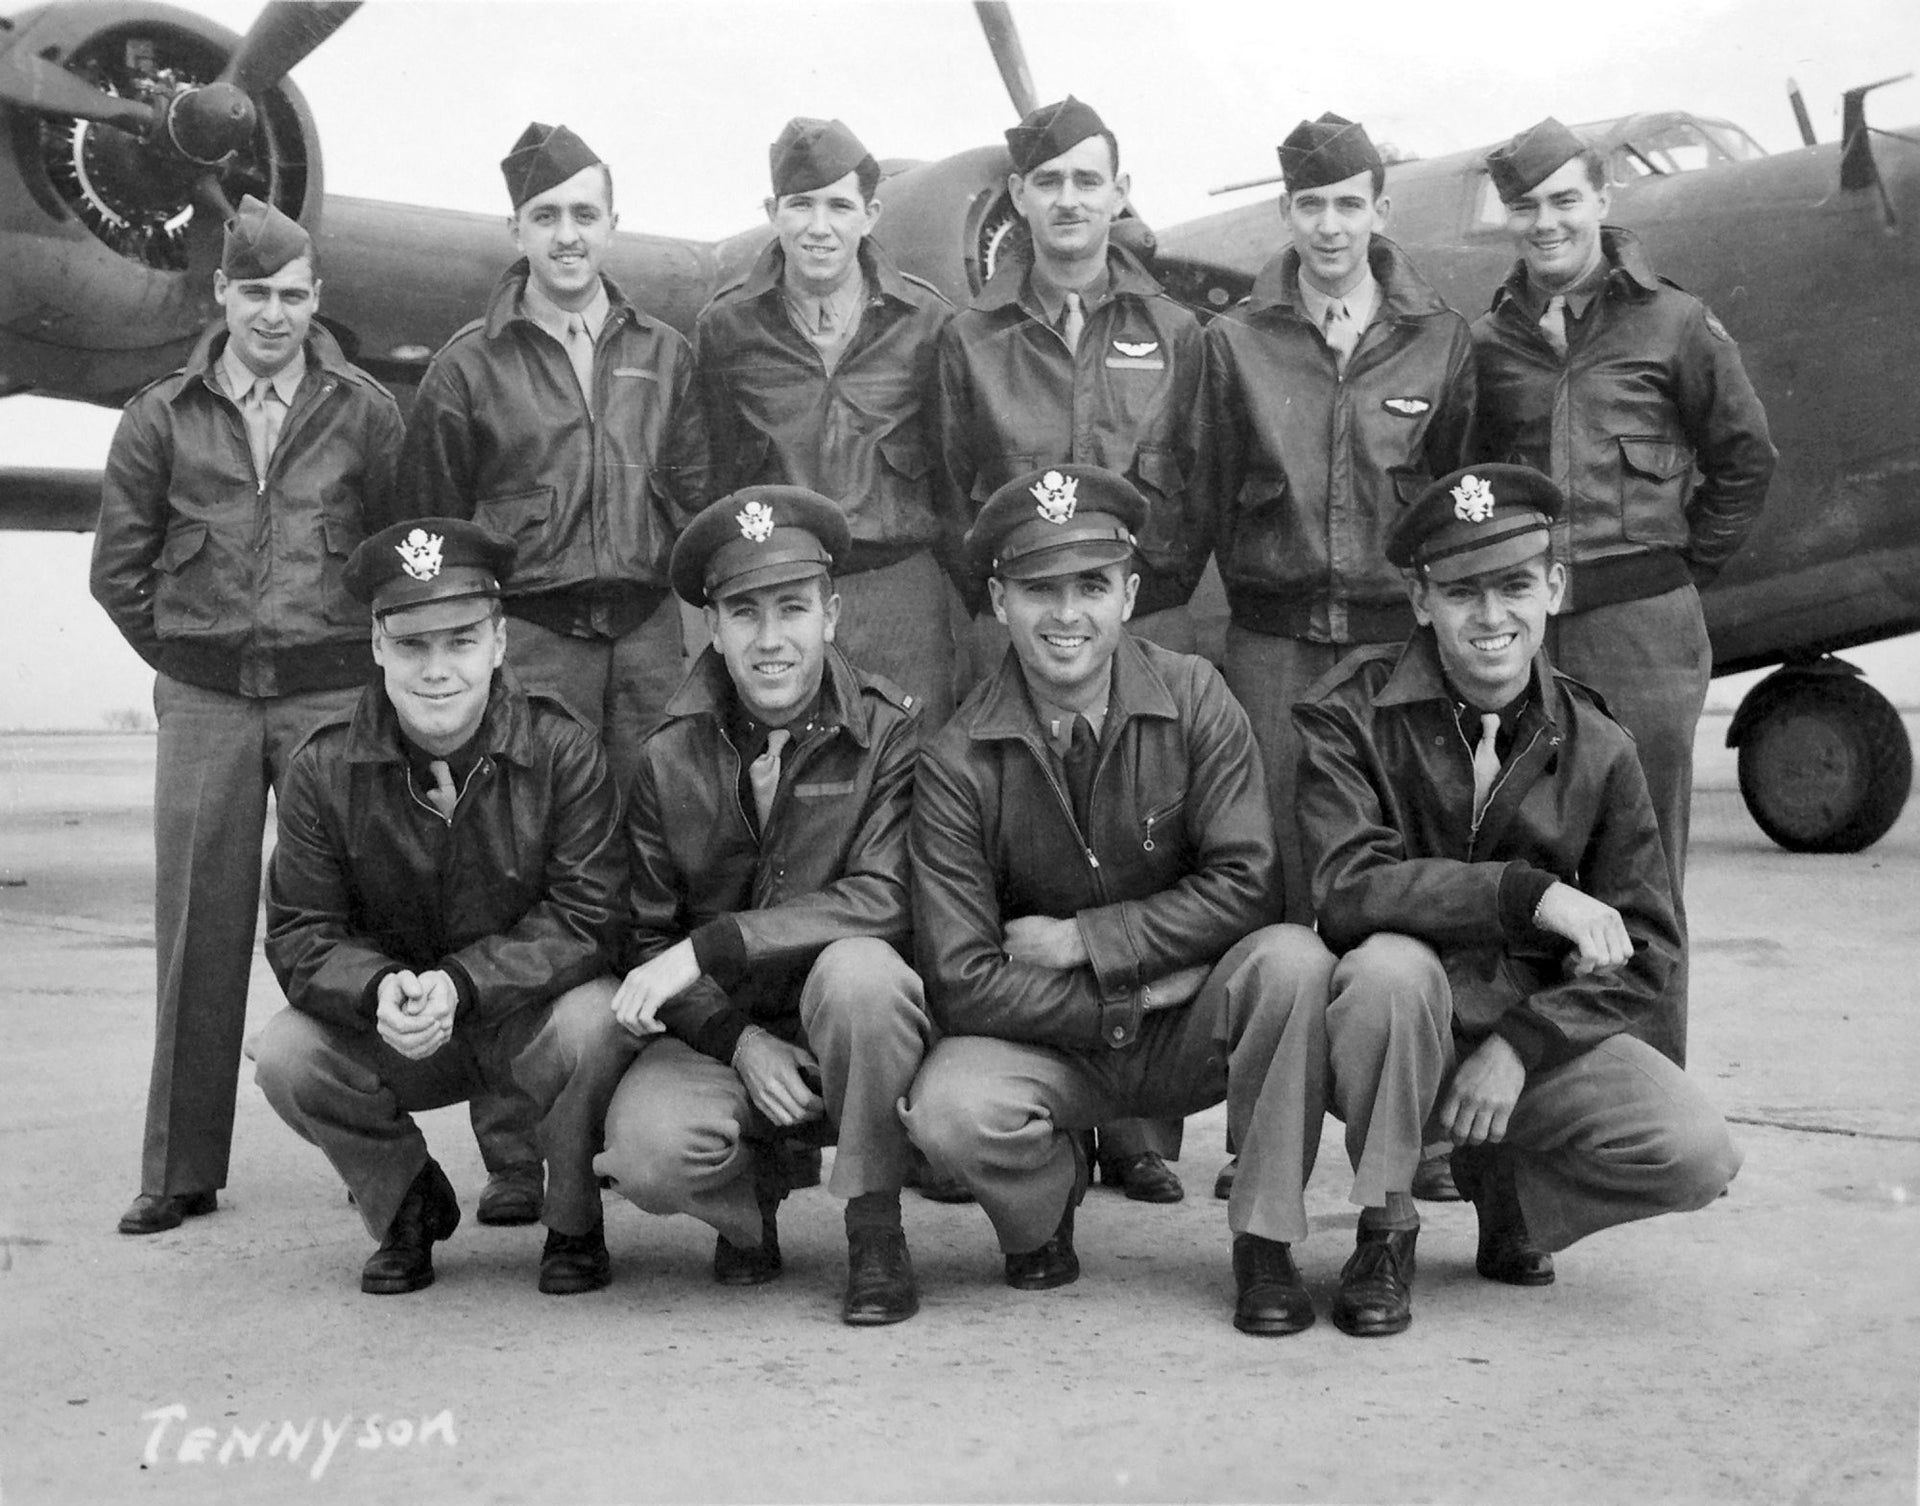 This circa 1943 U.S. Army Air Force photo shows Lt. Tom Kelly, lower right, and other crew members of the B-24 bomber training in the U.S. during World War II.